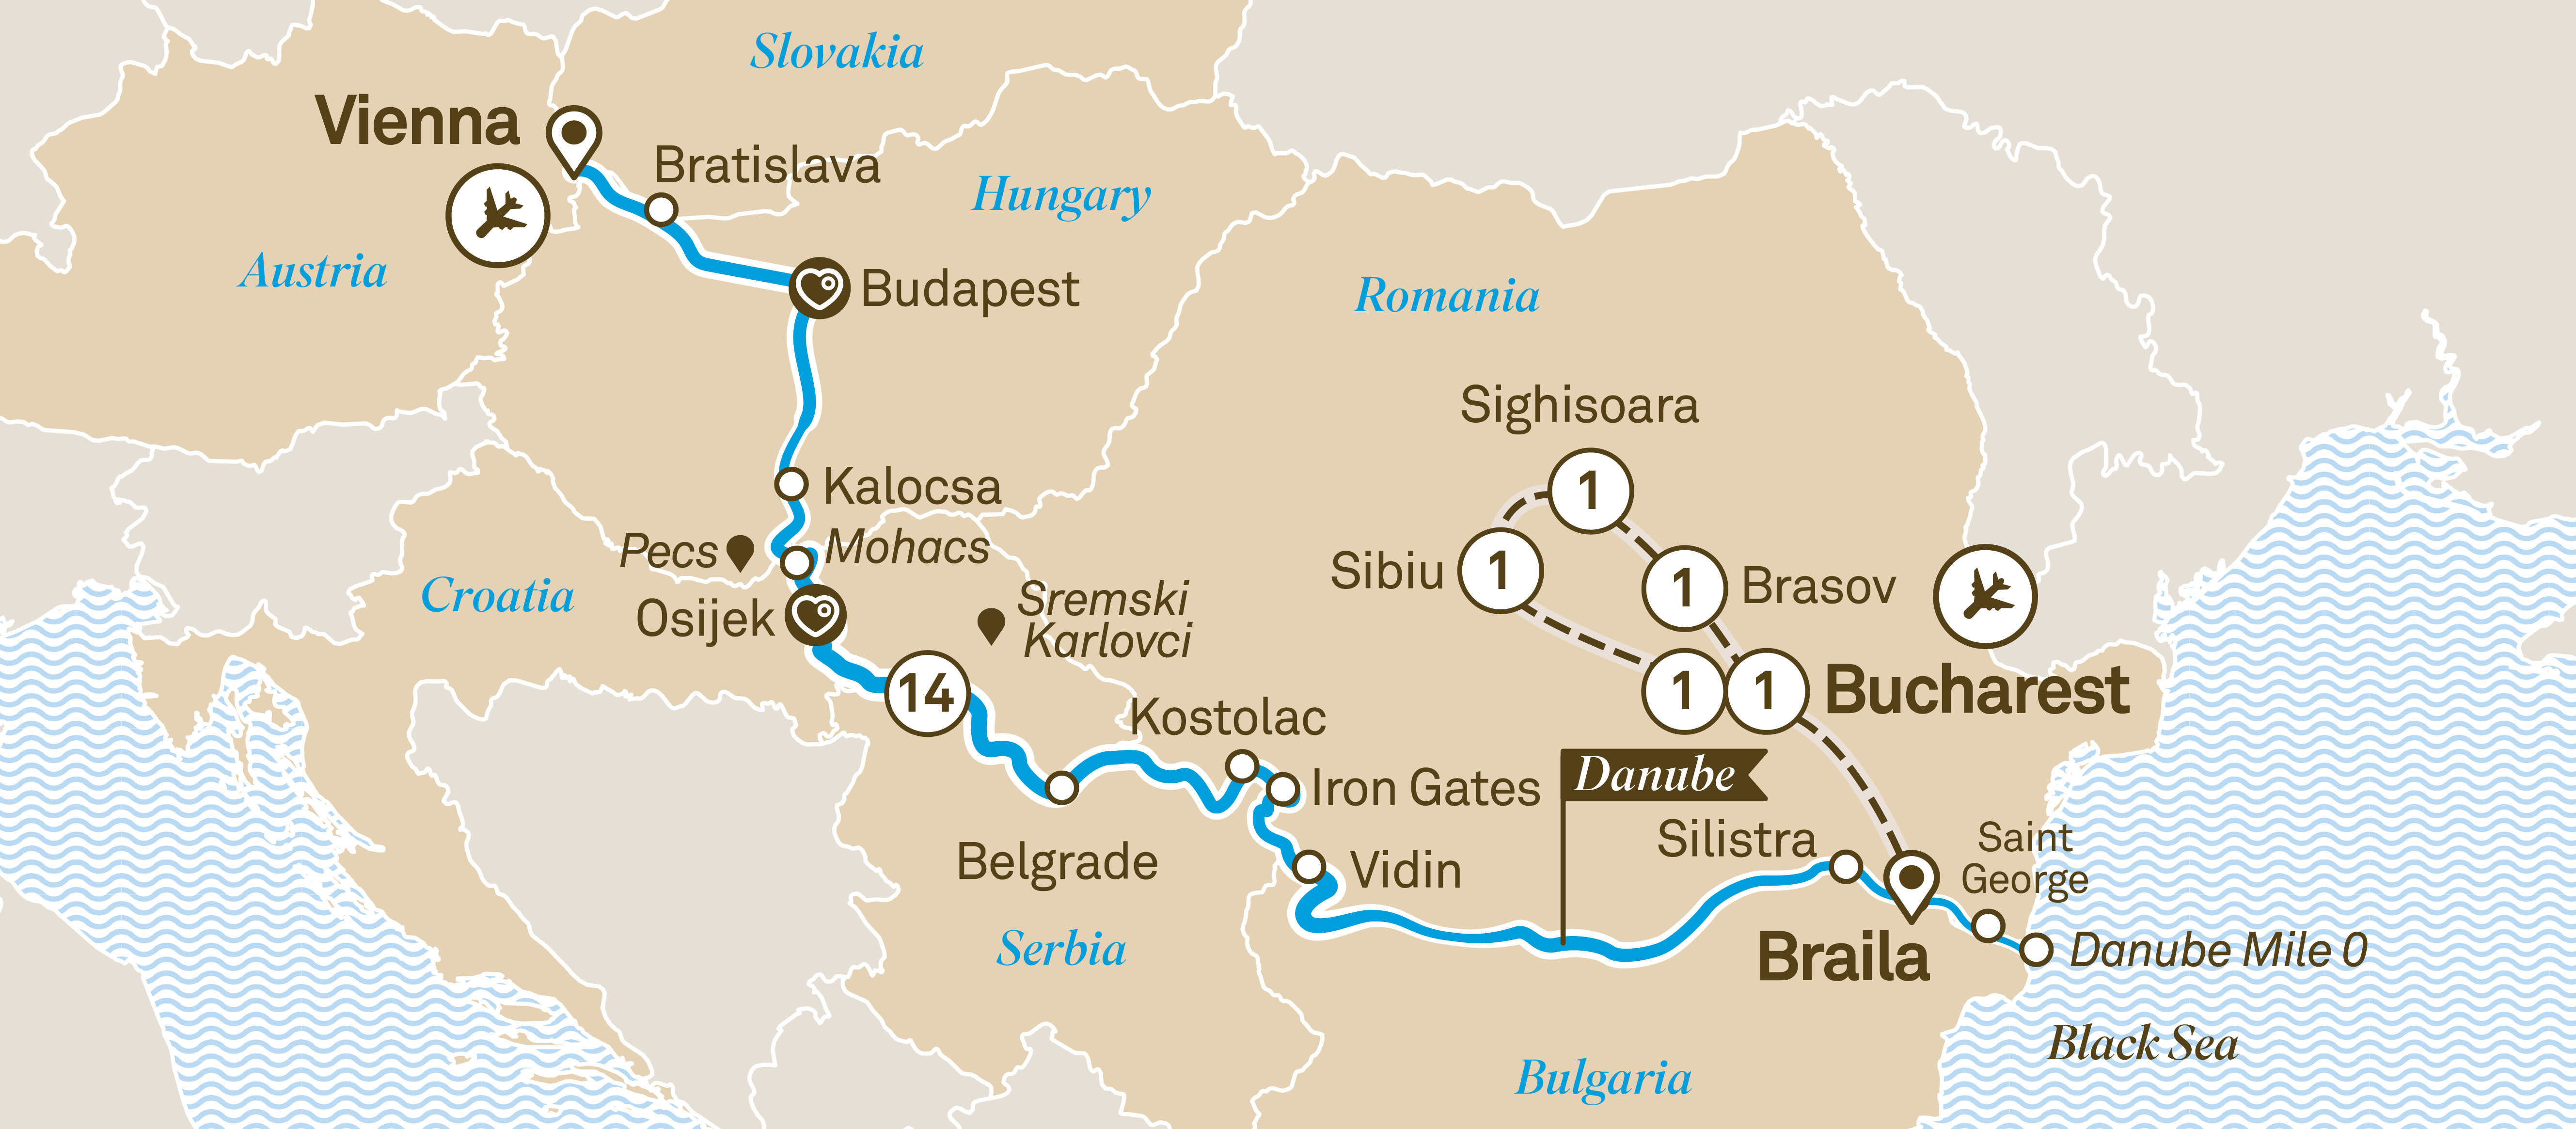 Danube Delta Discovery with Transylvania Bucharest to Vienna 2019